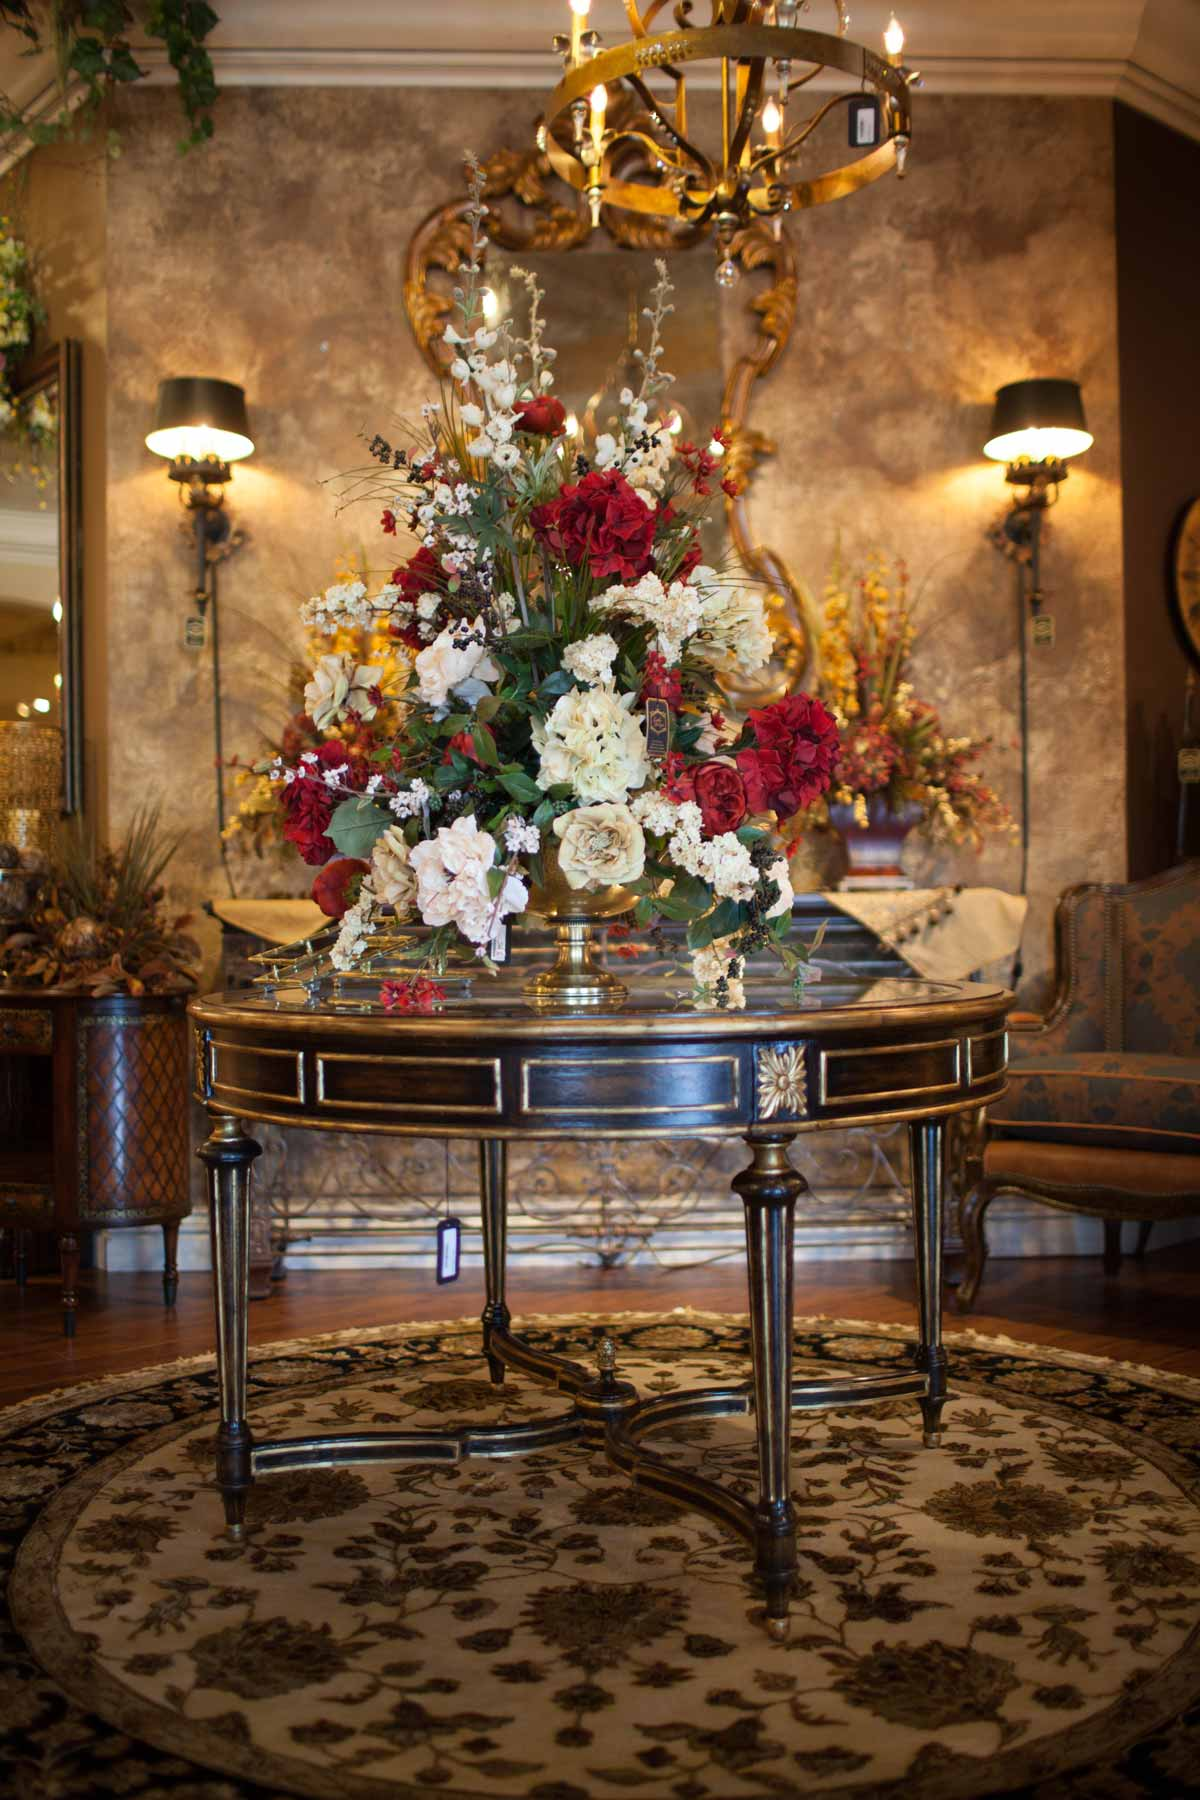 Hotel Foyer Flower Arrangements : Foyer floral arrangements ri u roccommunity